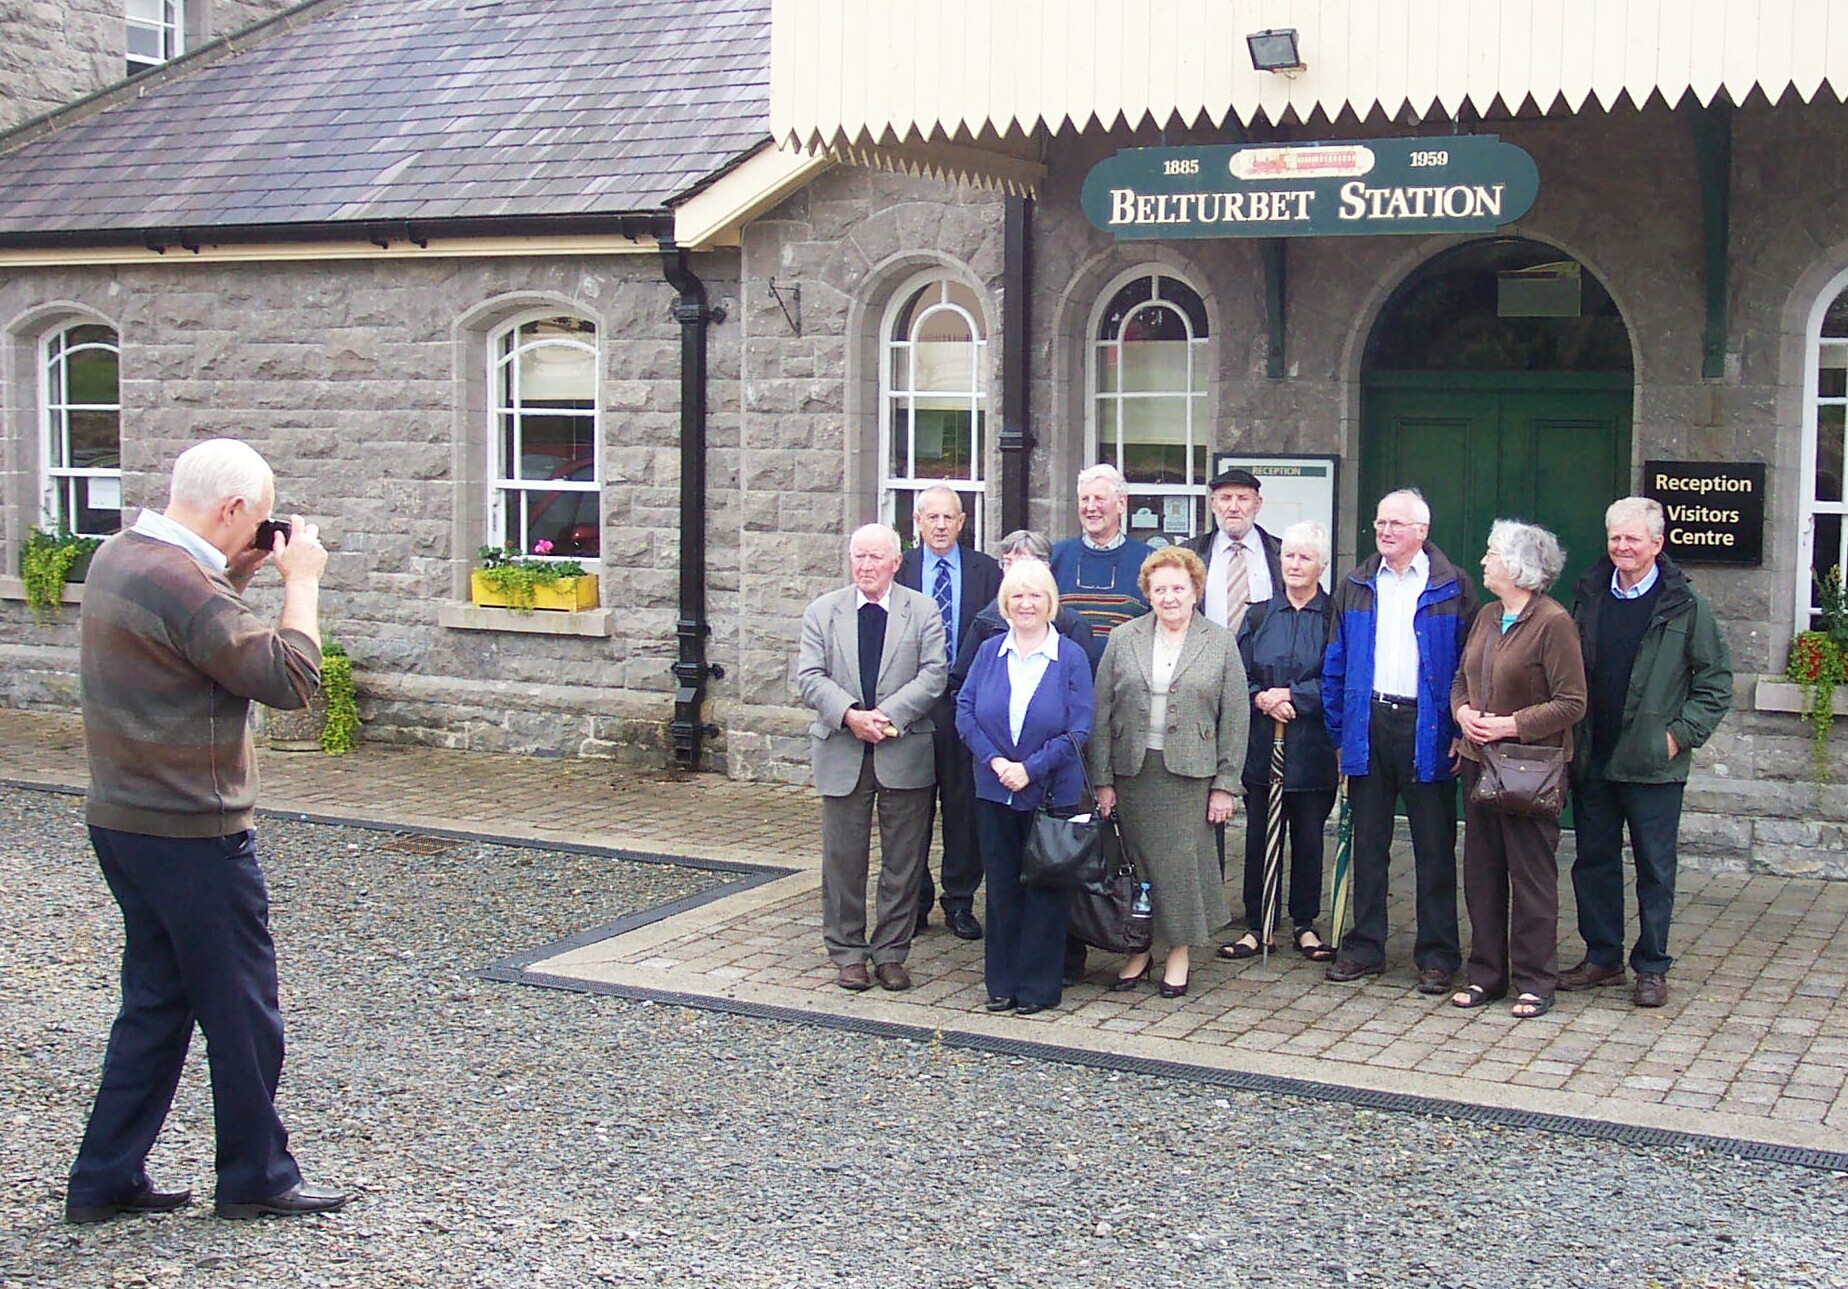 Belturbet outing group 7th Sept 2009